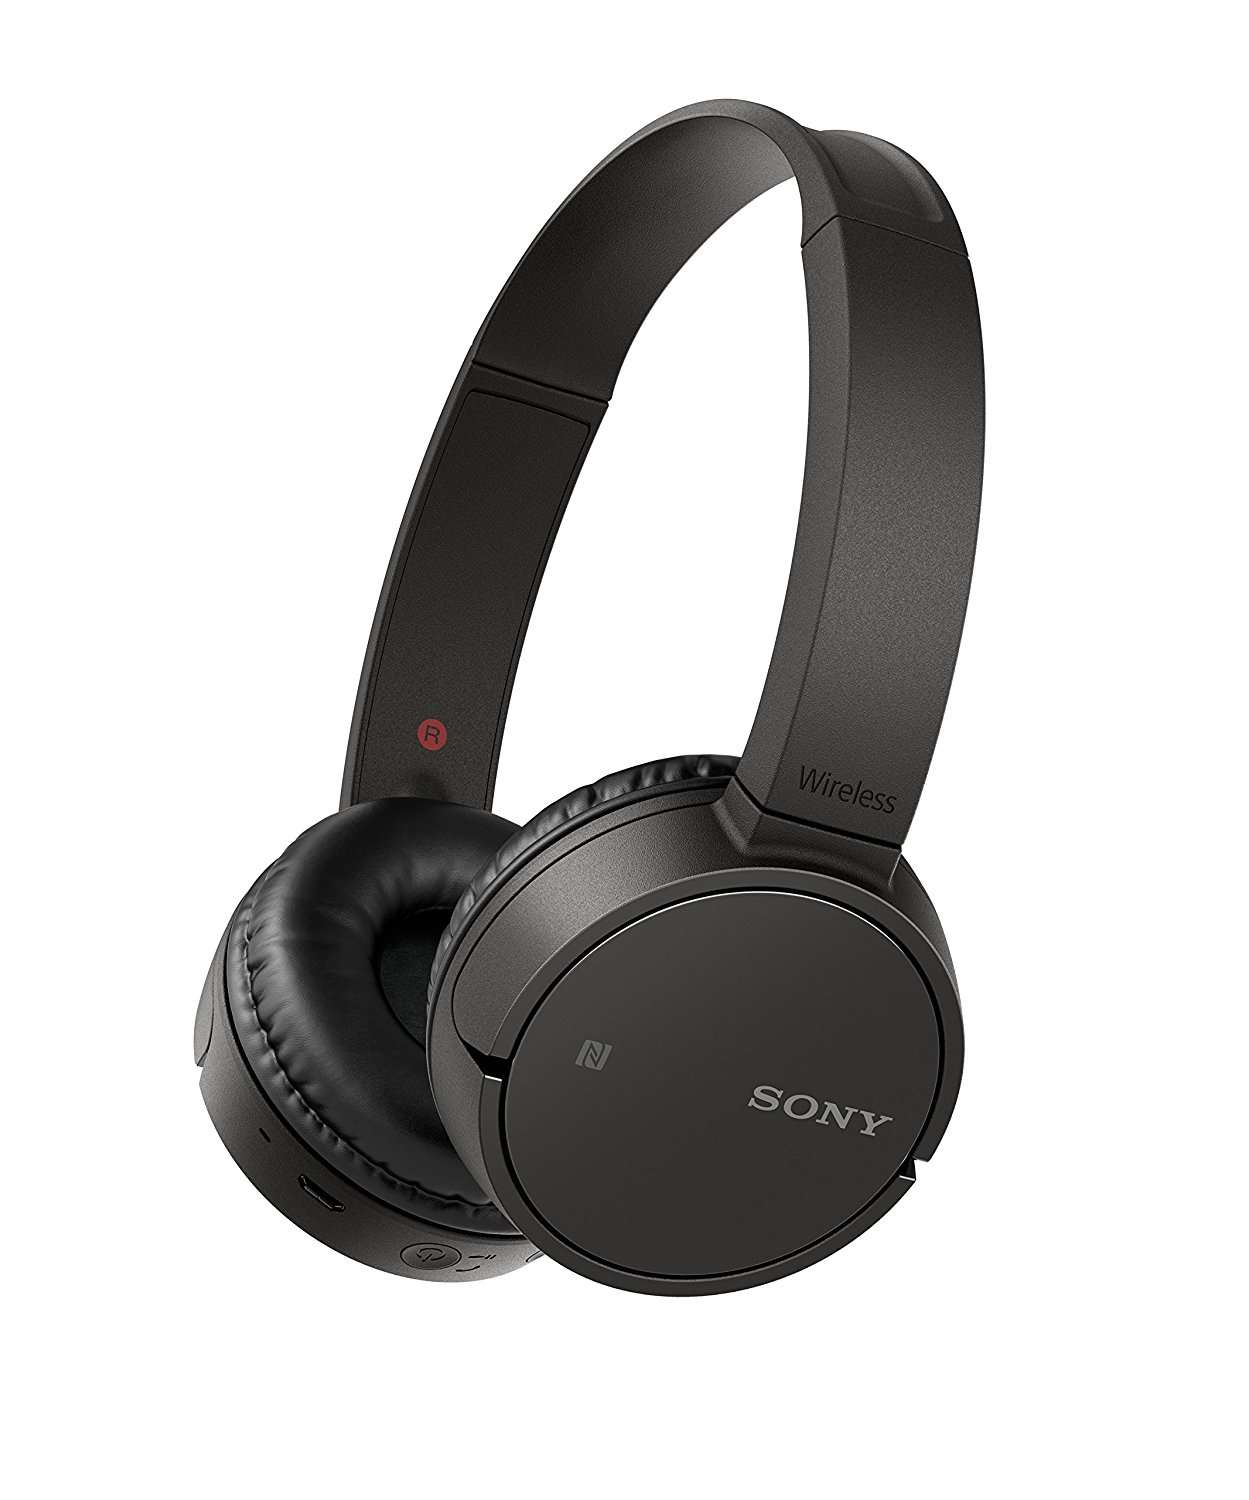 Sony WH-CH500 ottime cuffie Wireless in offerta su Amazon 6d1119eae224